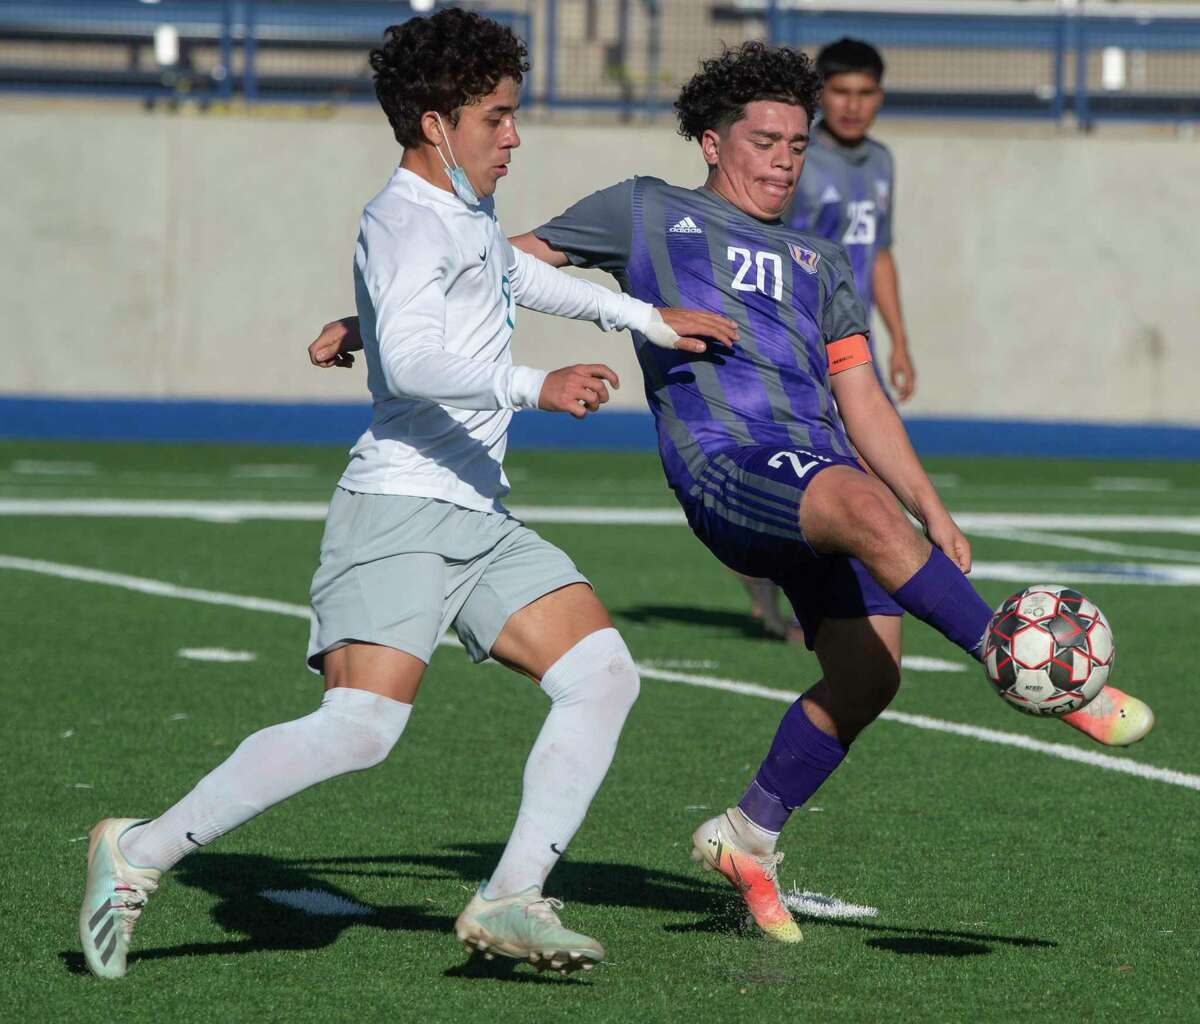 Midland High's Israel Ramirez battle for the ball with El Paso Pebble Hills' Felix Casas 03/26/21 during the Class 6A bi-district playoff game at Grande Communications Stadium. Tim Fischer/Reporter-Telegram